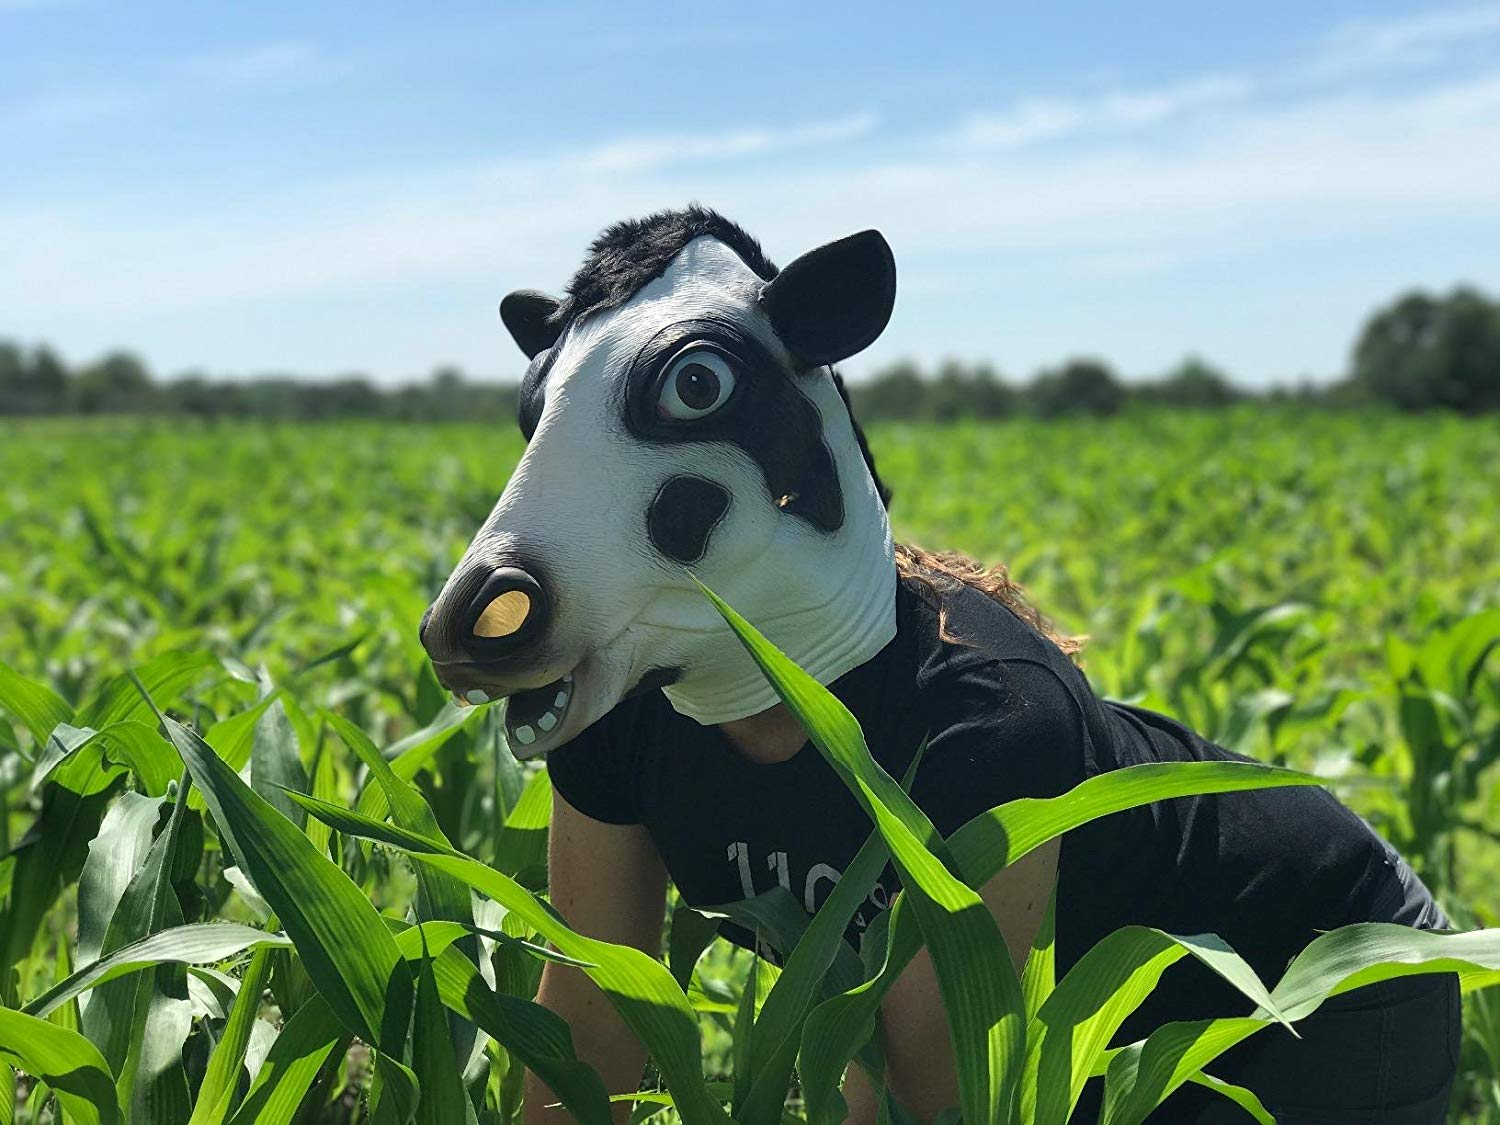 CreepyParty Novelty Halloween Costume Party Latex Cow Head Mask